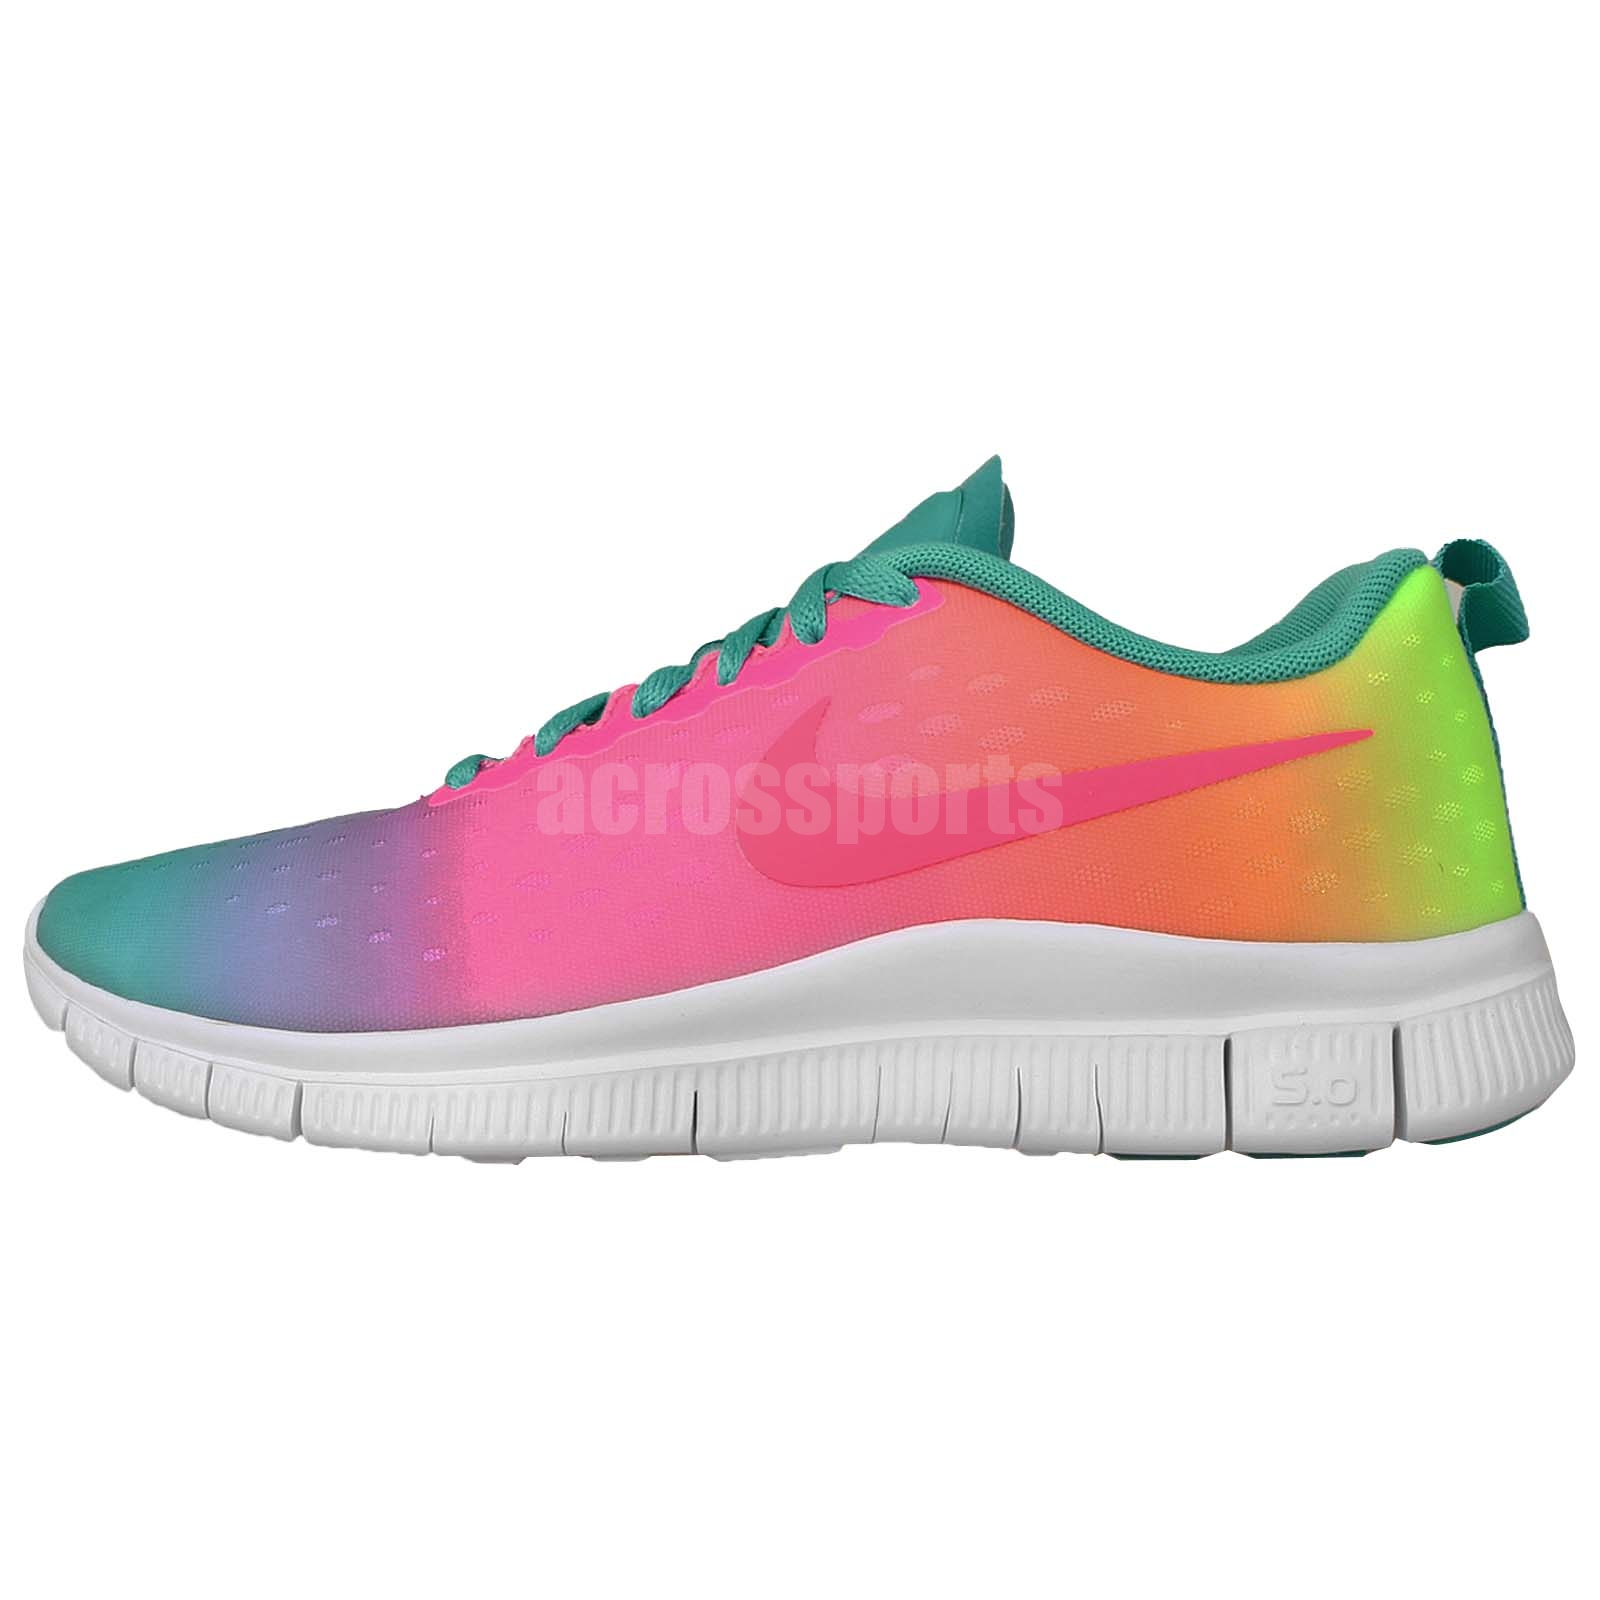 Free Express GS Rainbow Gradient Run Girls Youth Womens Running Shoes